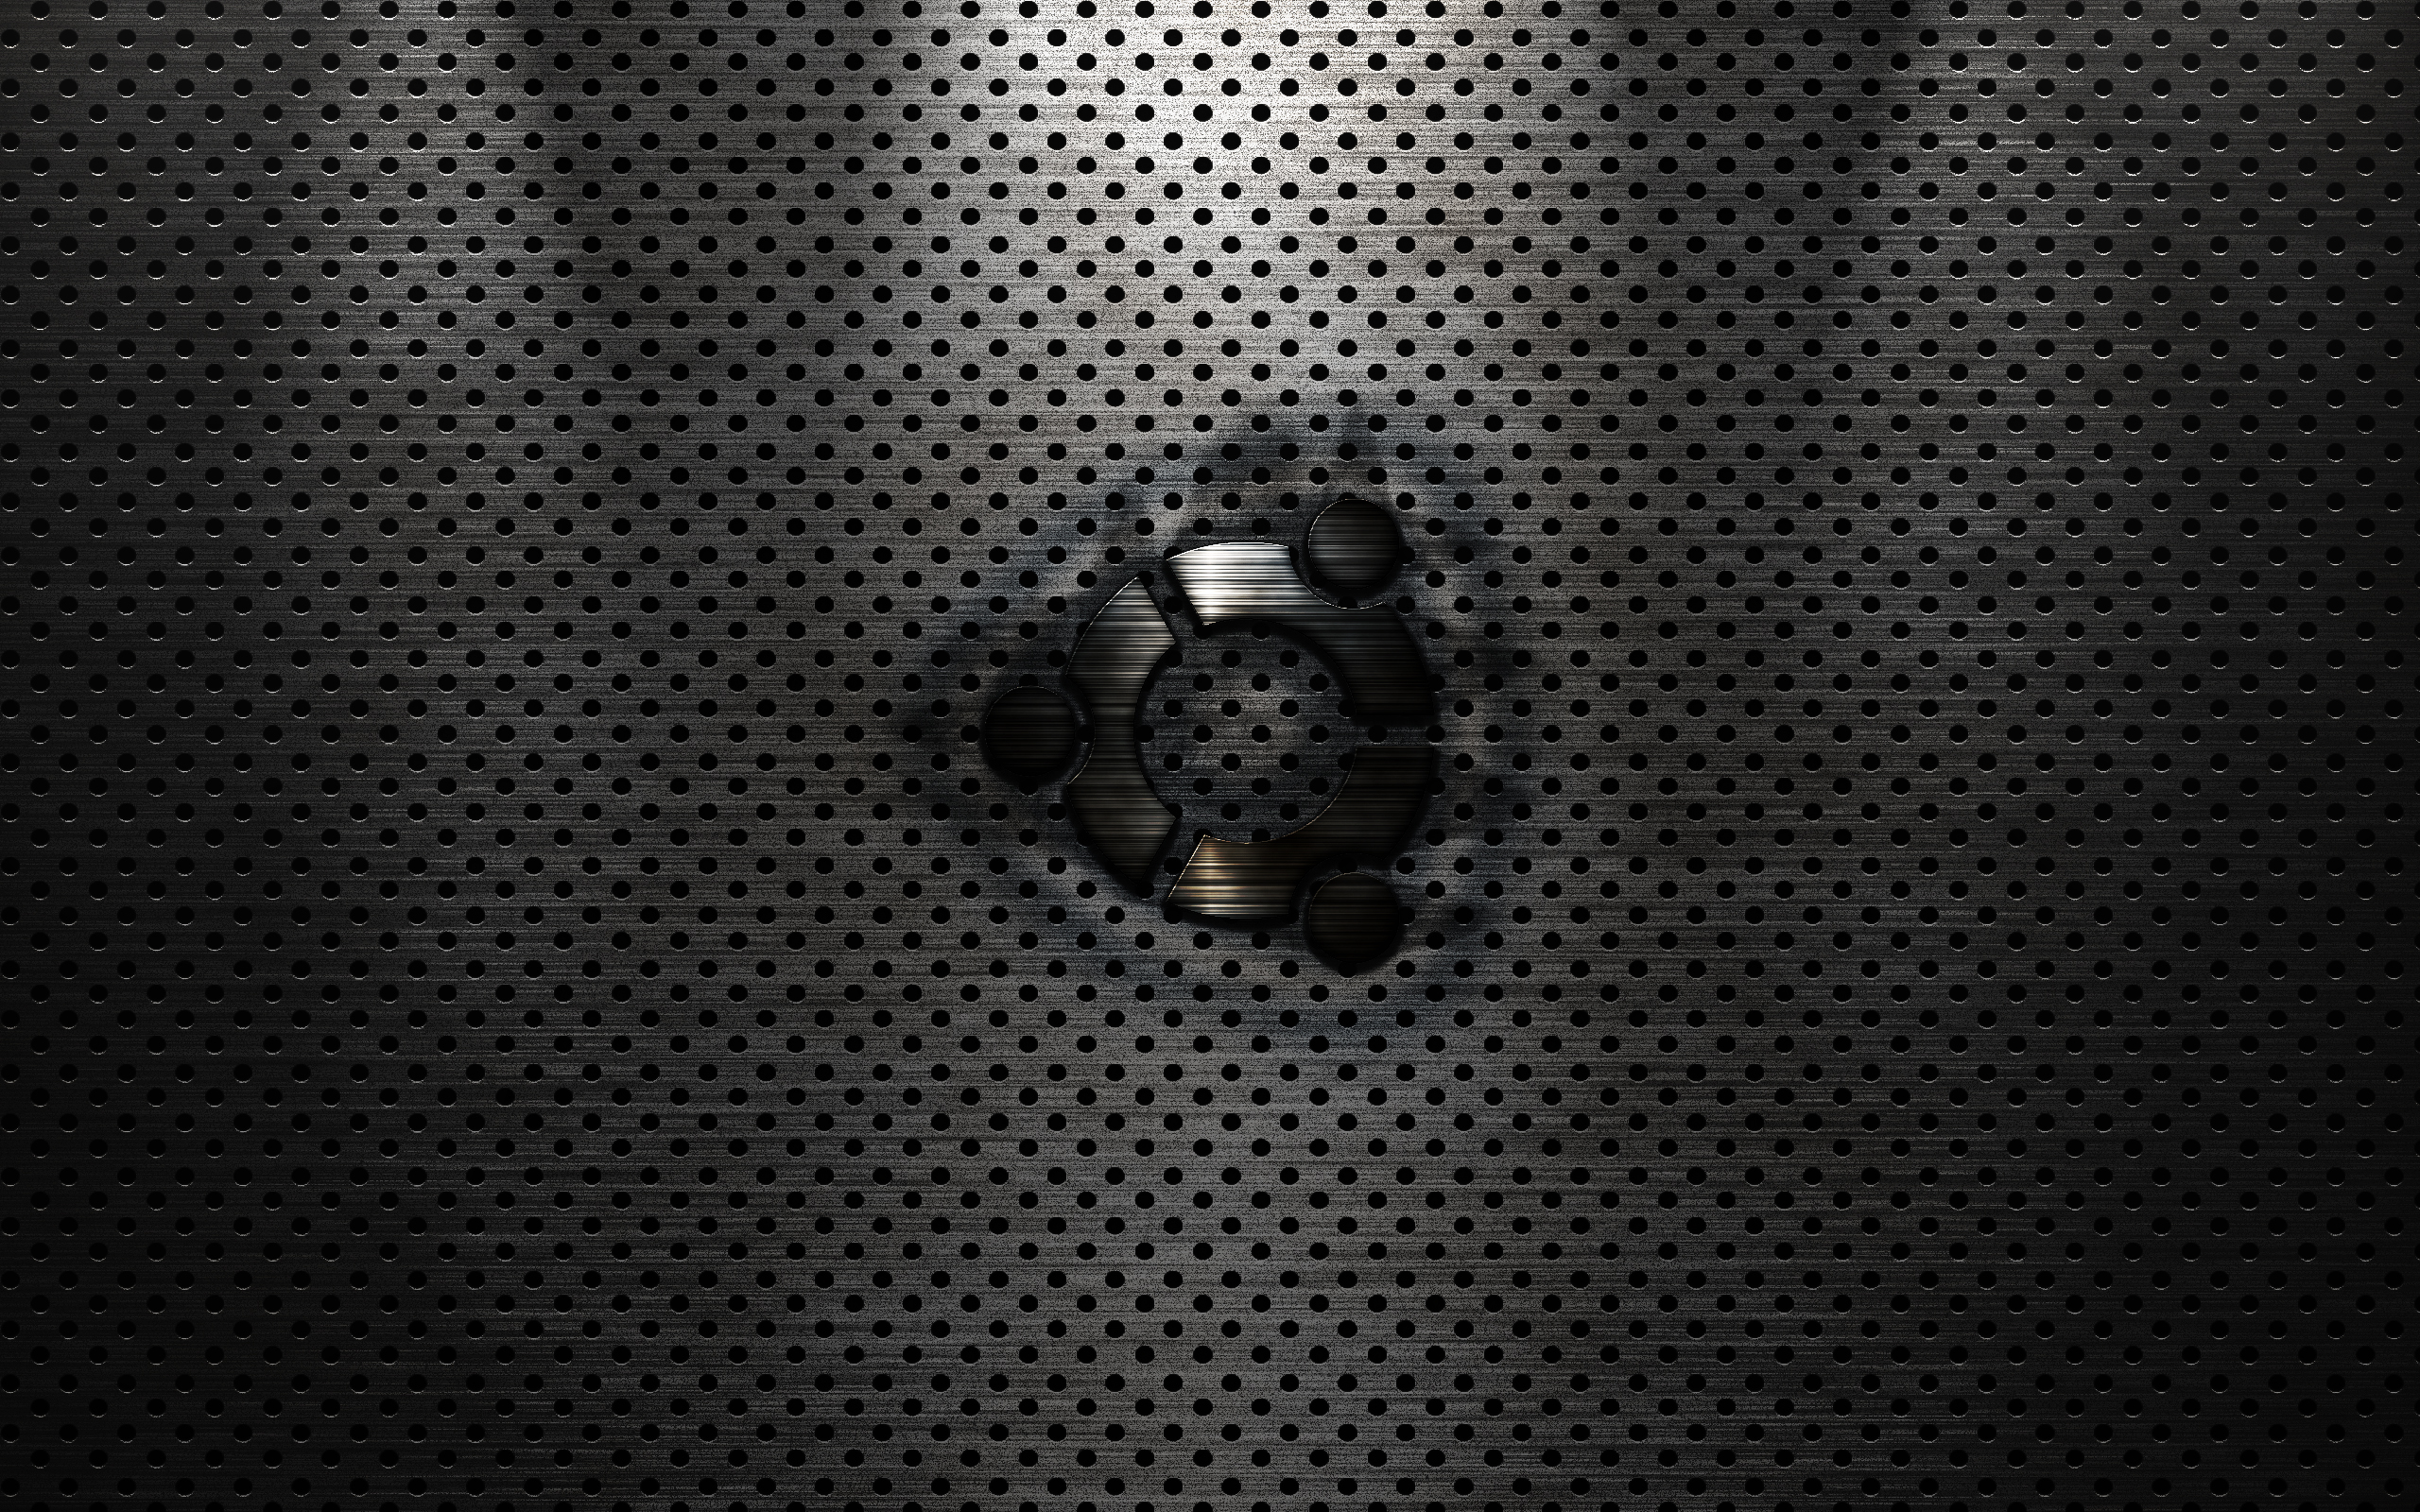 iron, riveting, download photo, texture